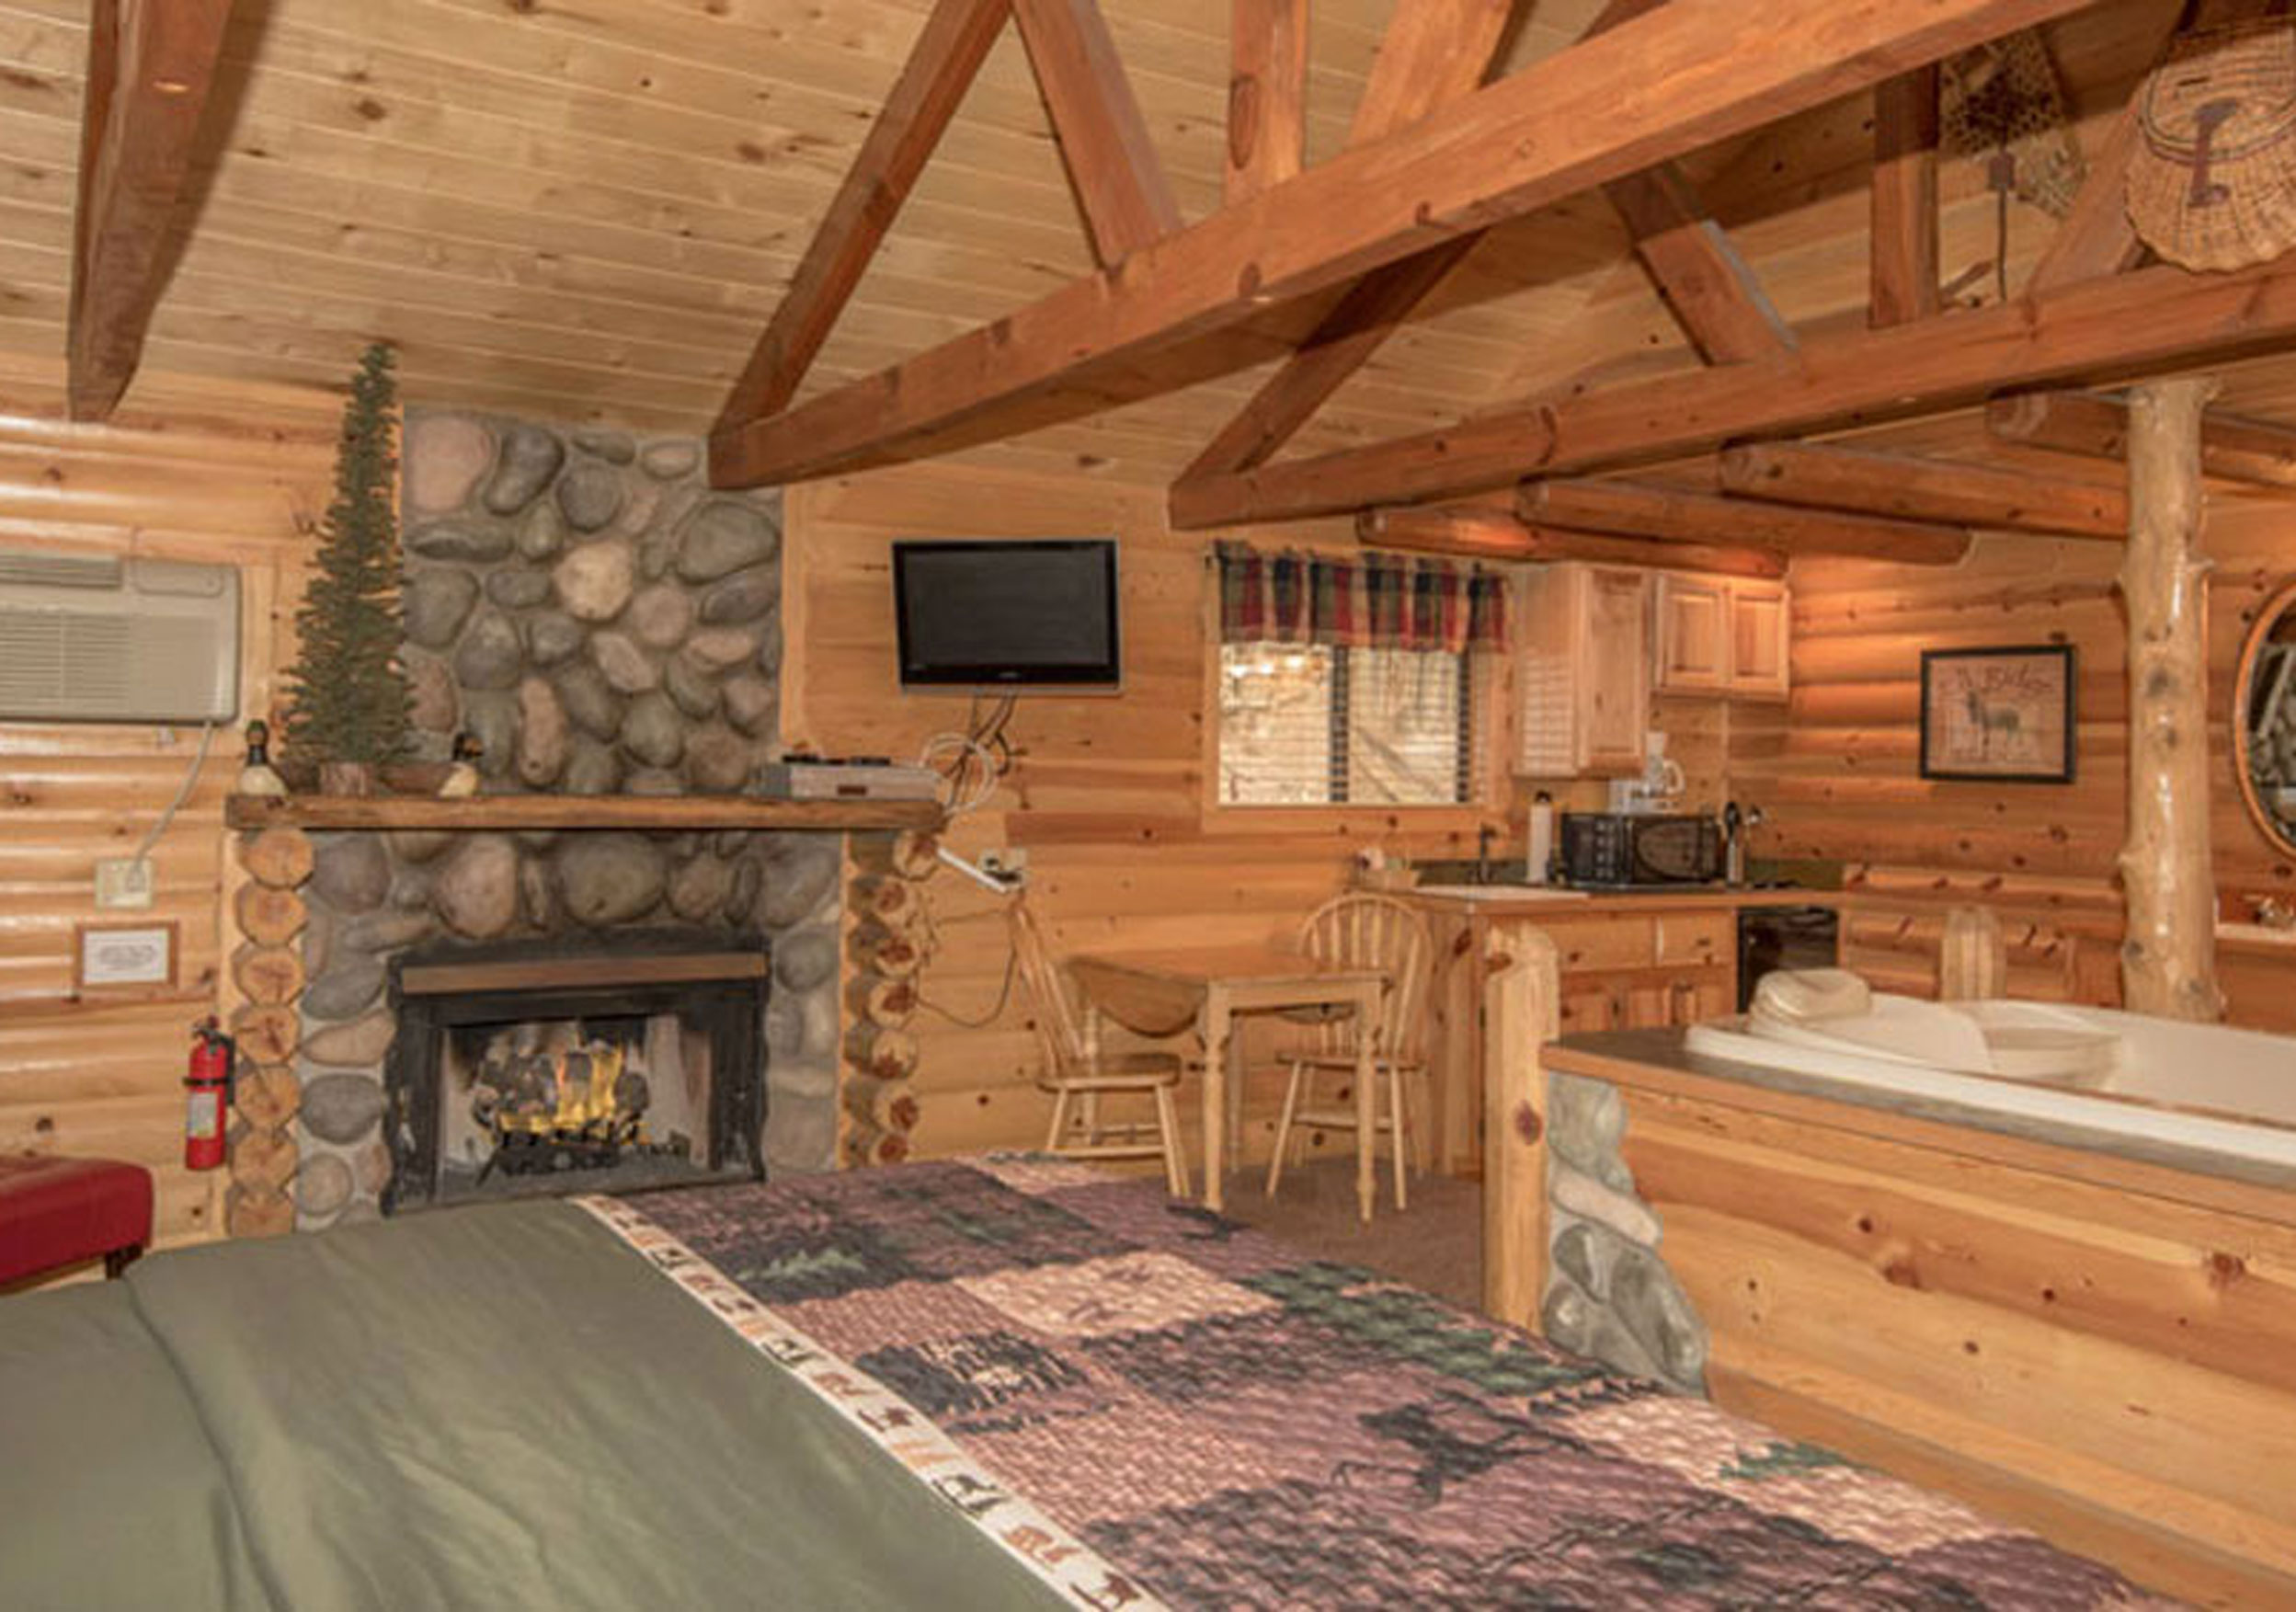 party downs victory cabin mikesmith rental cabins smith race casino mike ruidoso track and